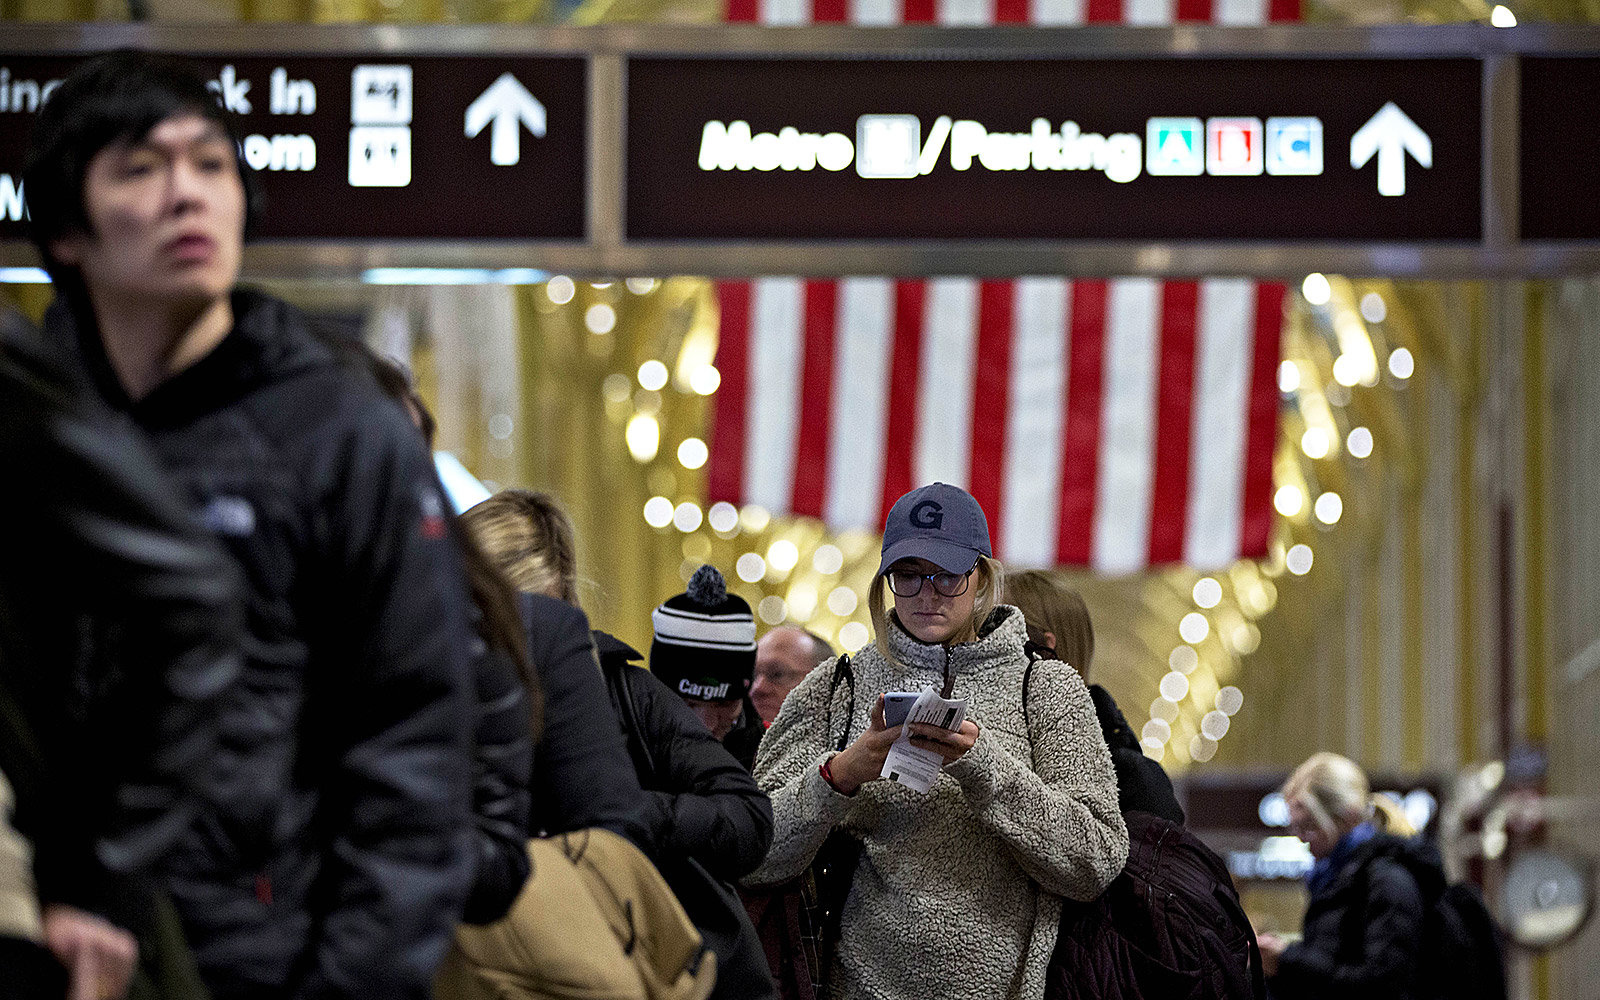 Why U.S. is asking visitors for social media information